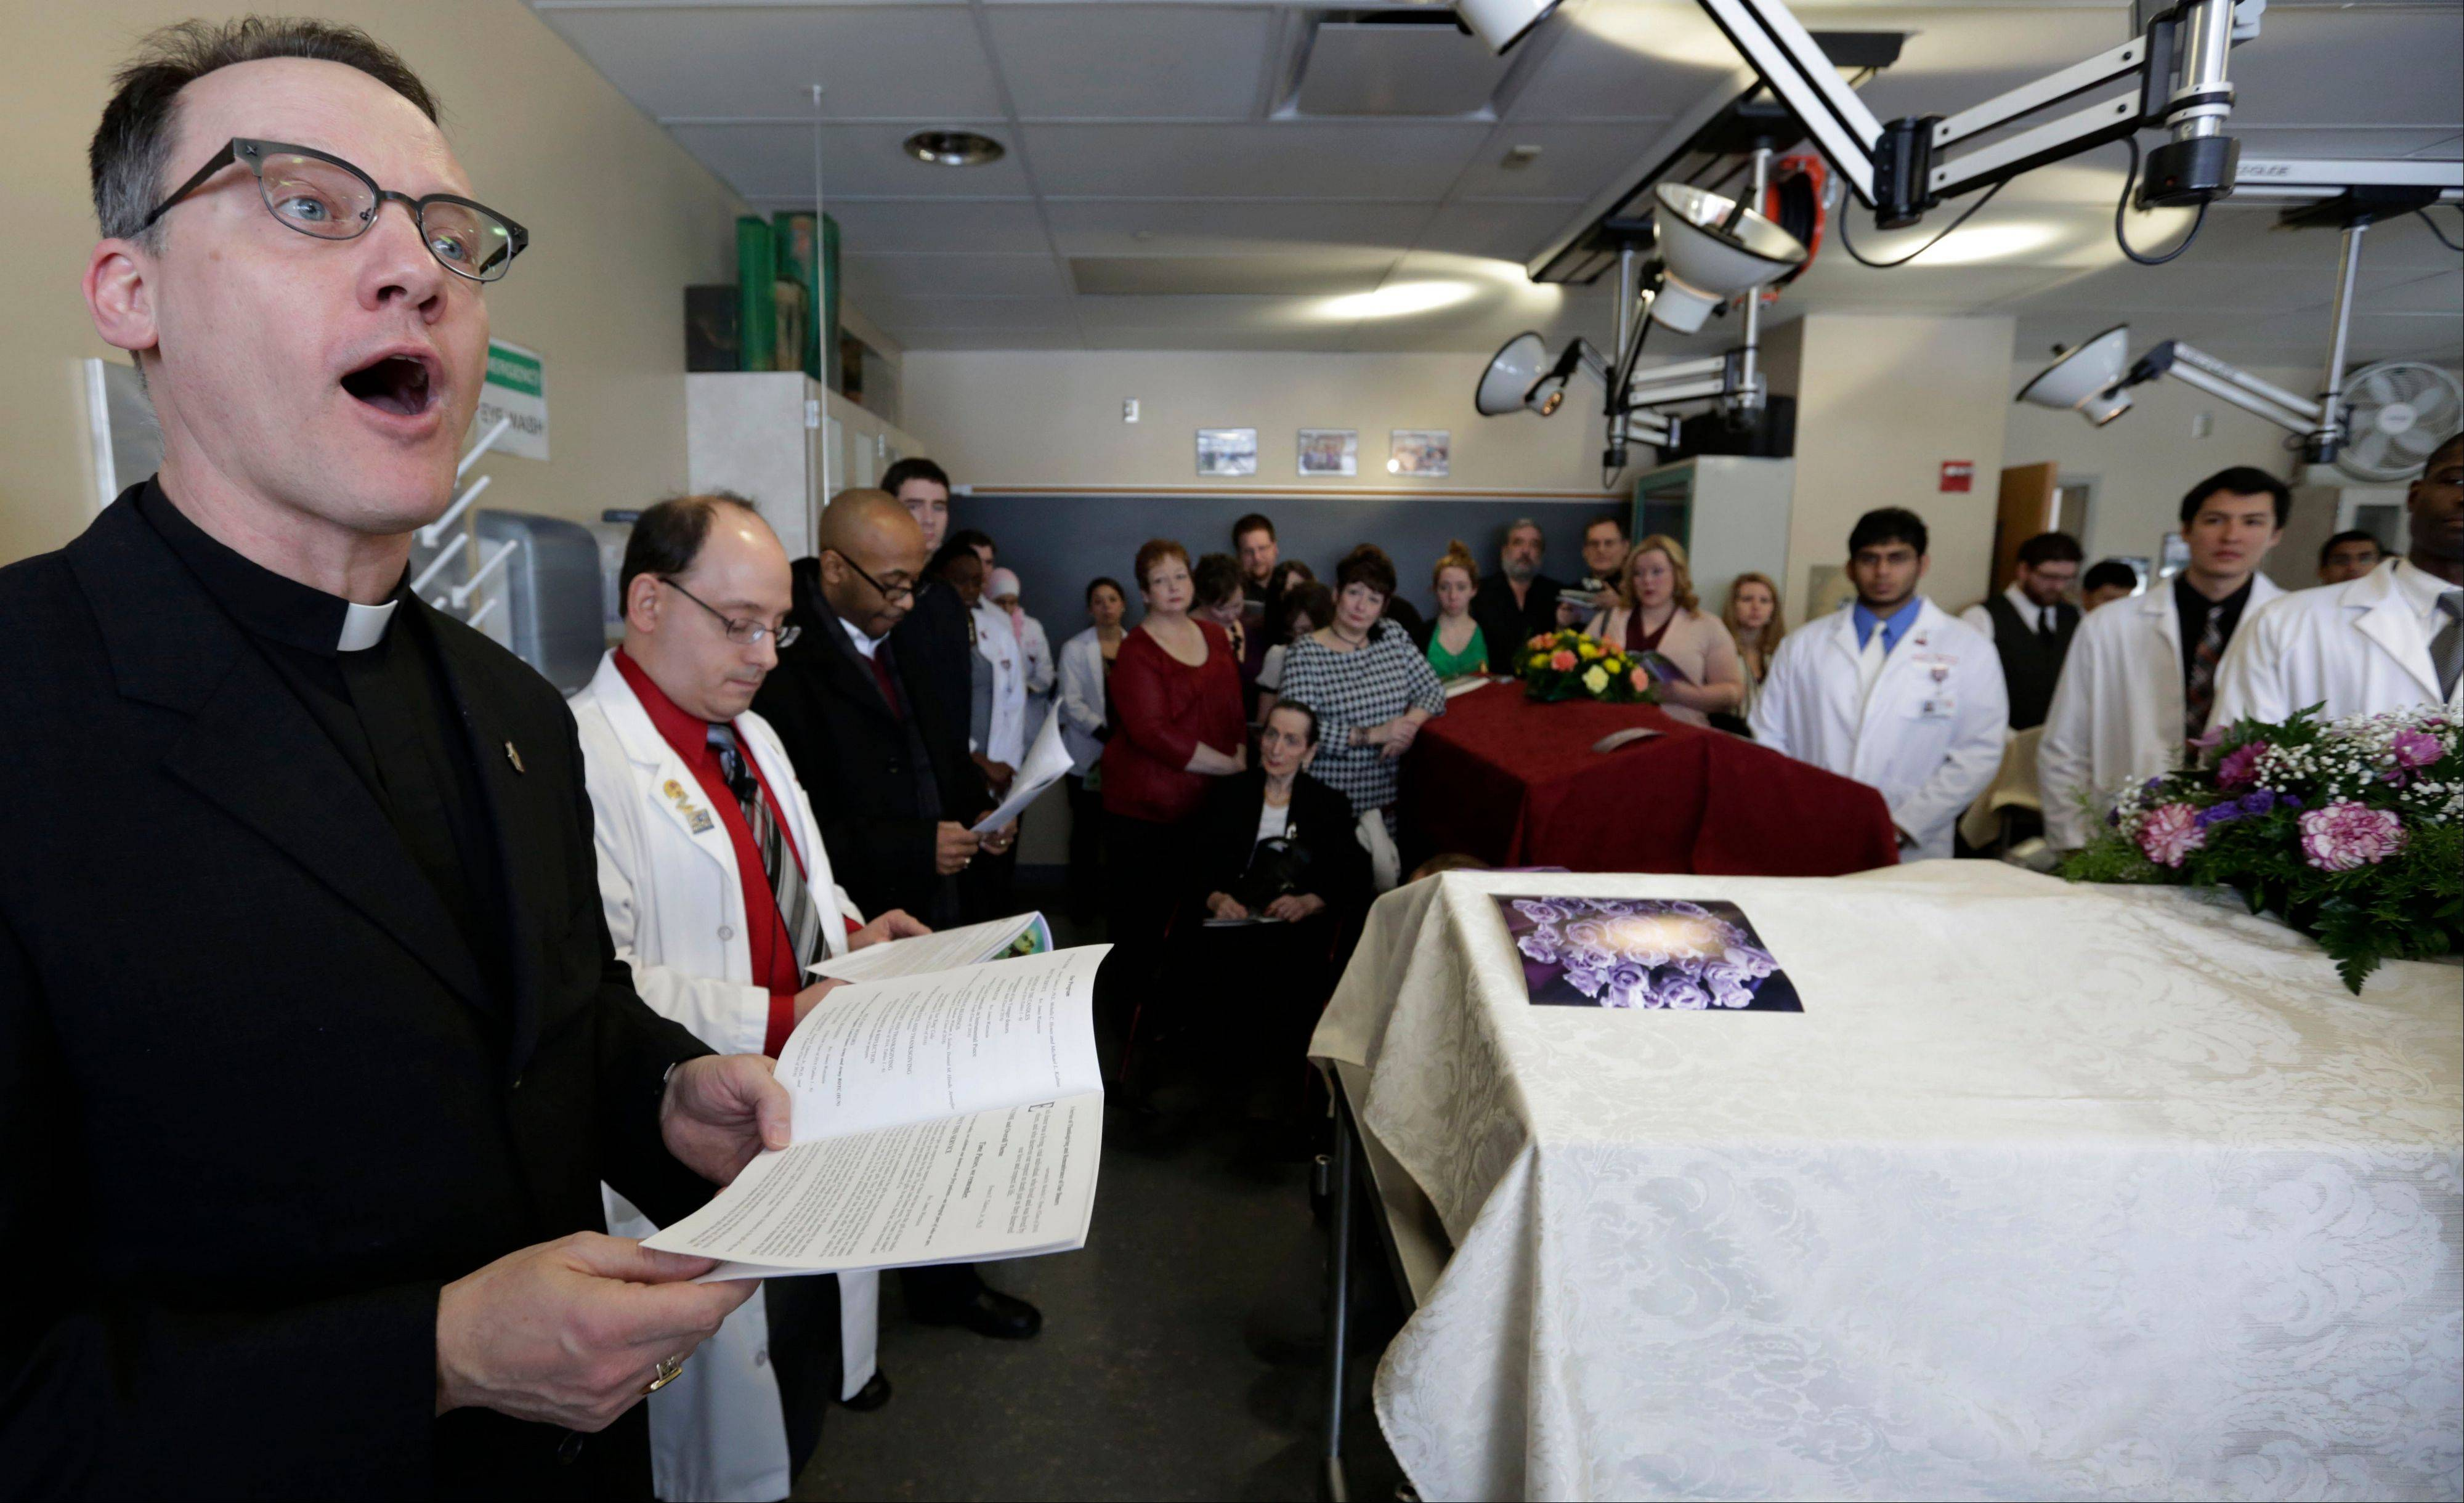 Rev. James Wetzstein speaks during the hourlong memorial service, where relatives of the donors gather around the steel tables where their loved ones were dissected with the medical students who worked on the bodies during the previous semester. The students read letters of appreciation, clergy offer prayers, and tears are shed.